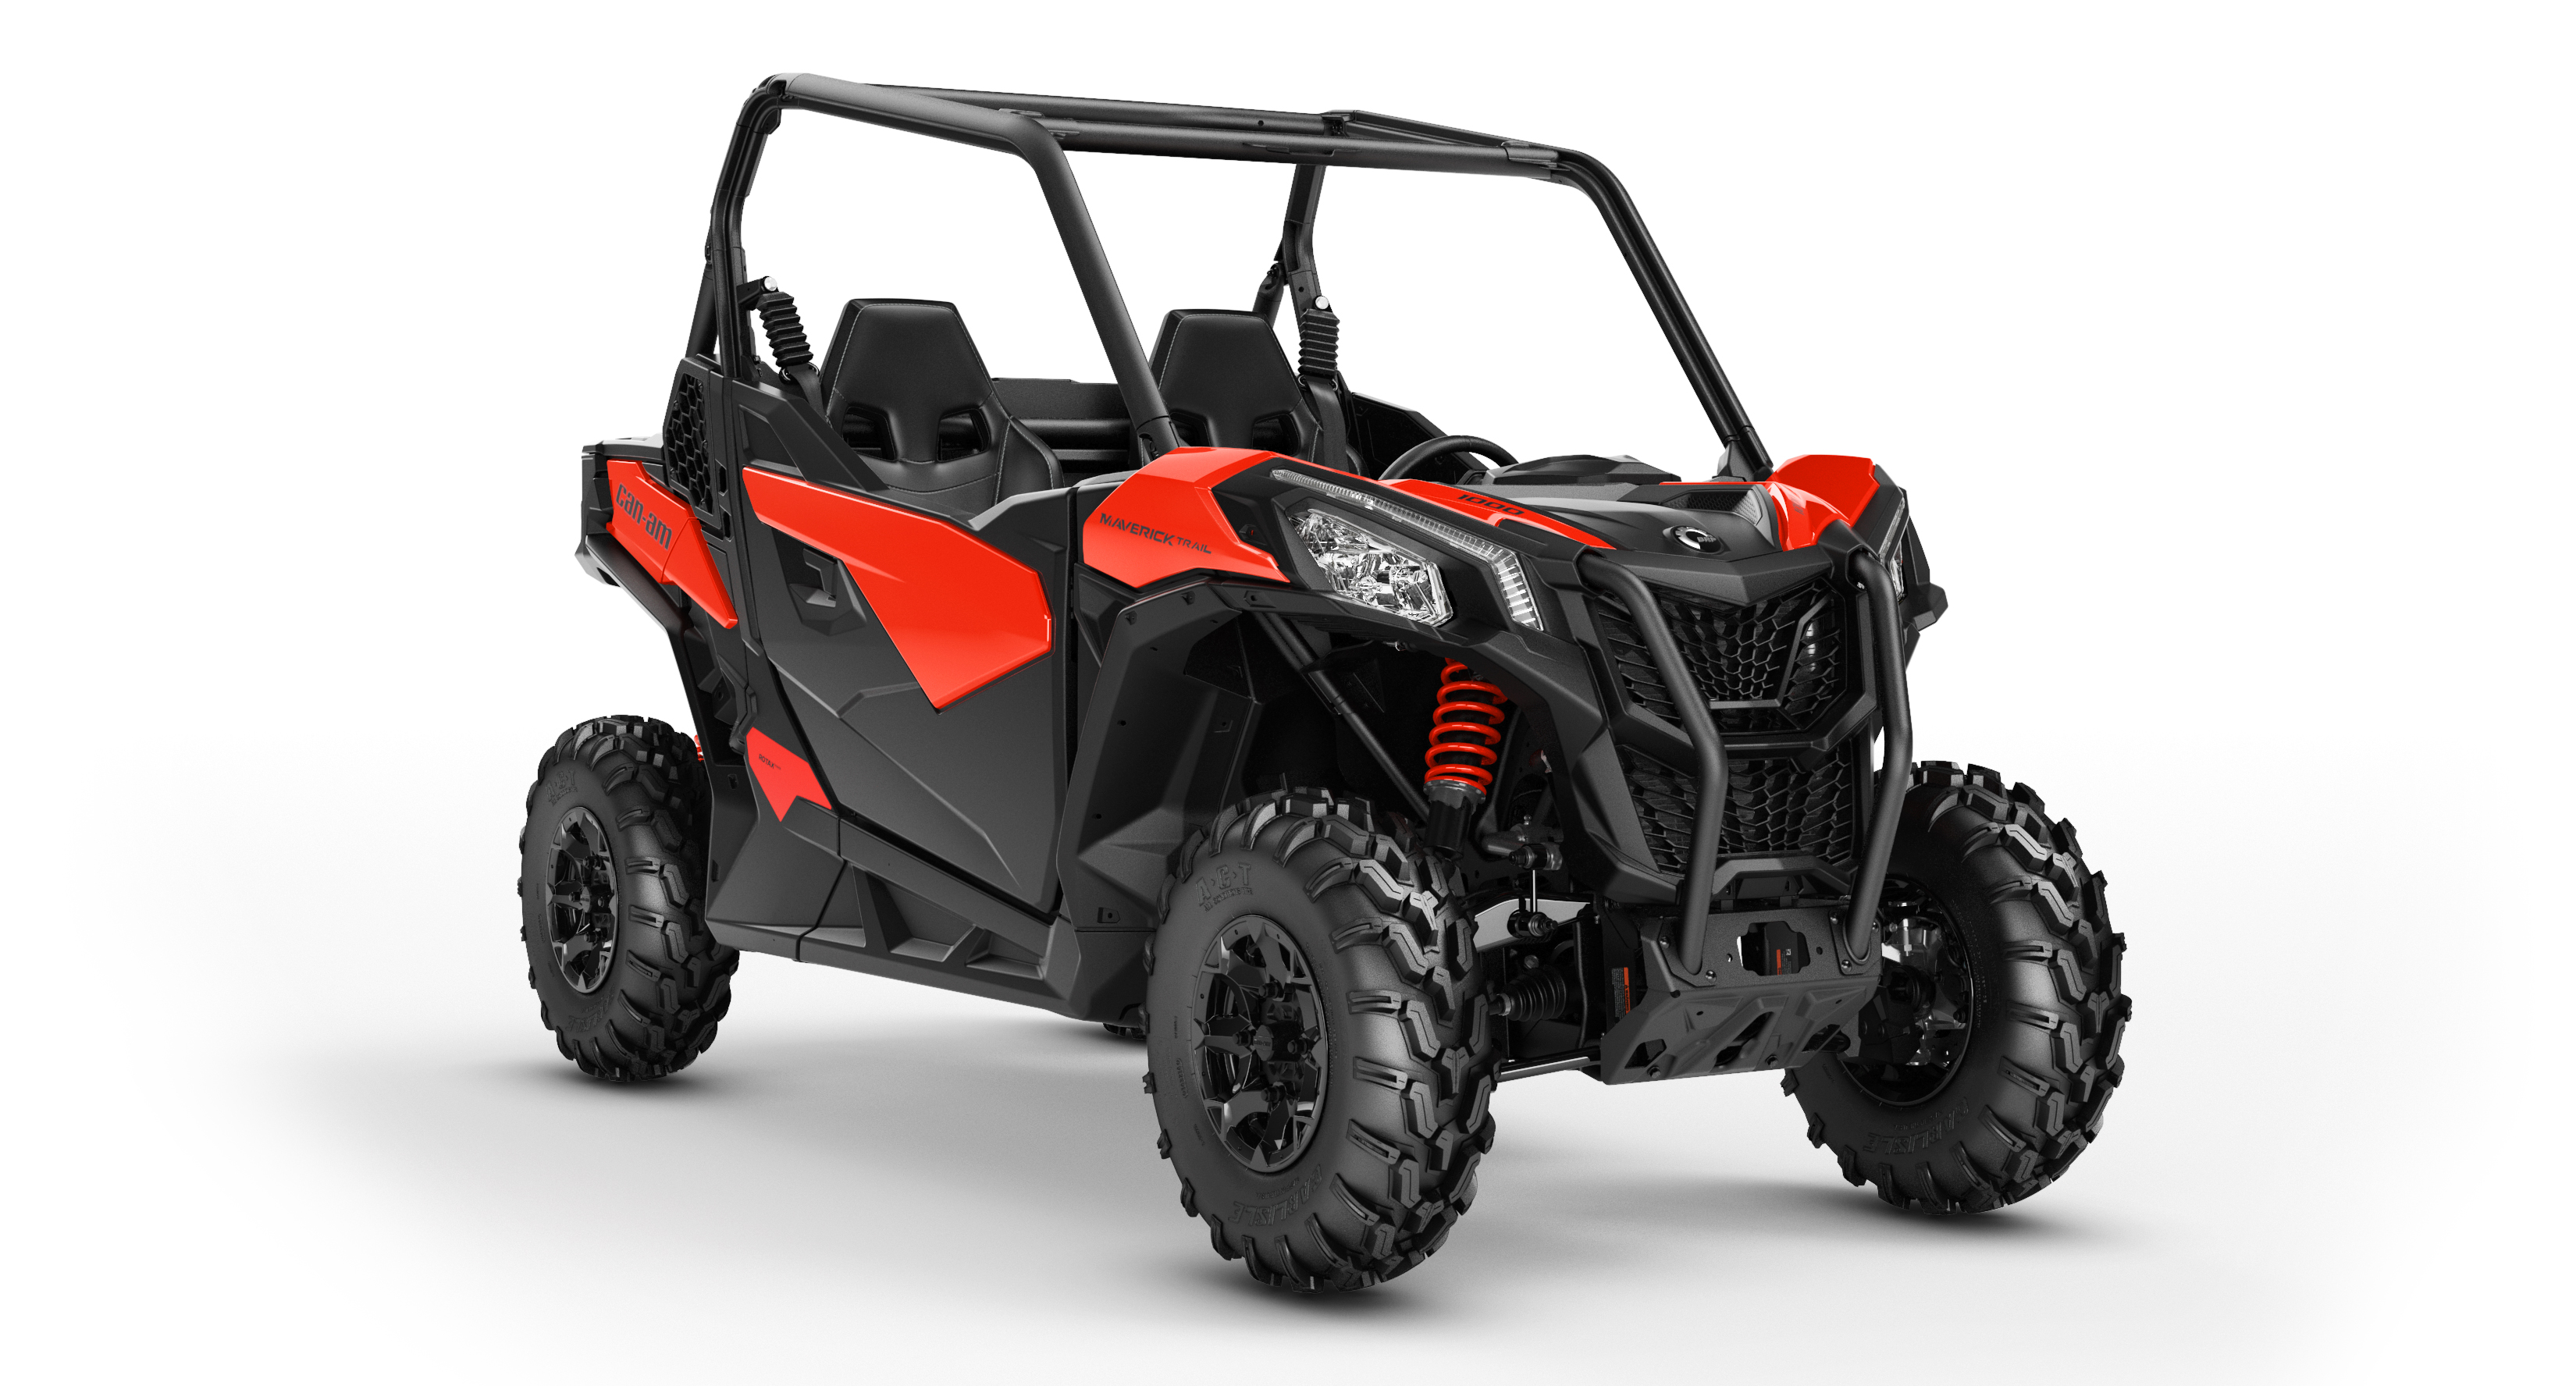 2018 Can-Am Maverick Trail DPS 1000 Can-Am Red